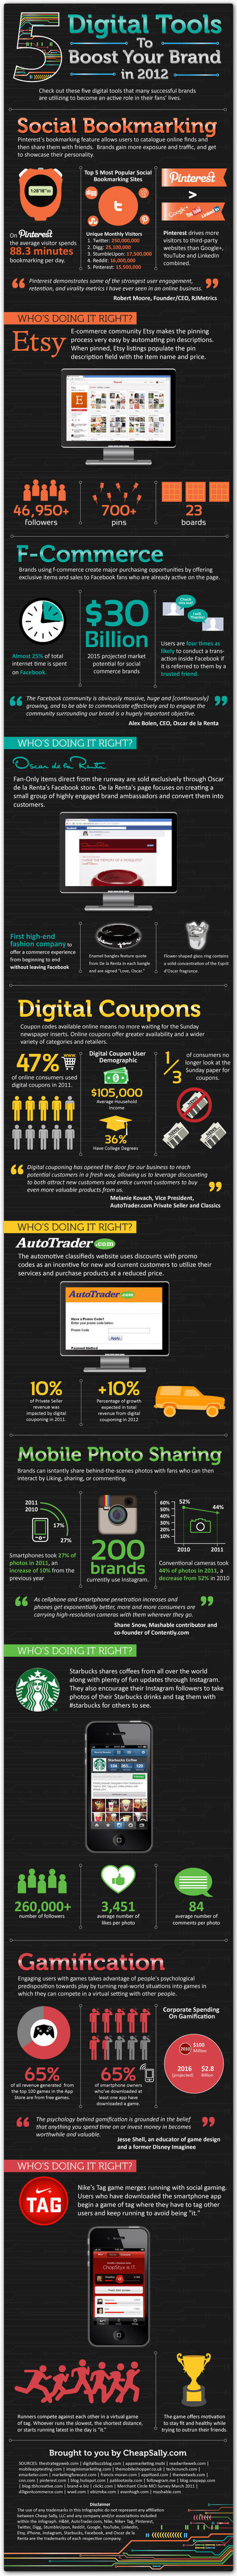 5 Digital Tools to Boost Your Brand in 2012 Infographic | Curation, Social Business and Beyond | Scoop.it